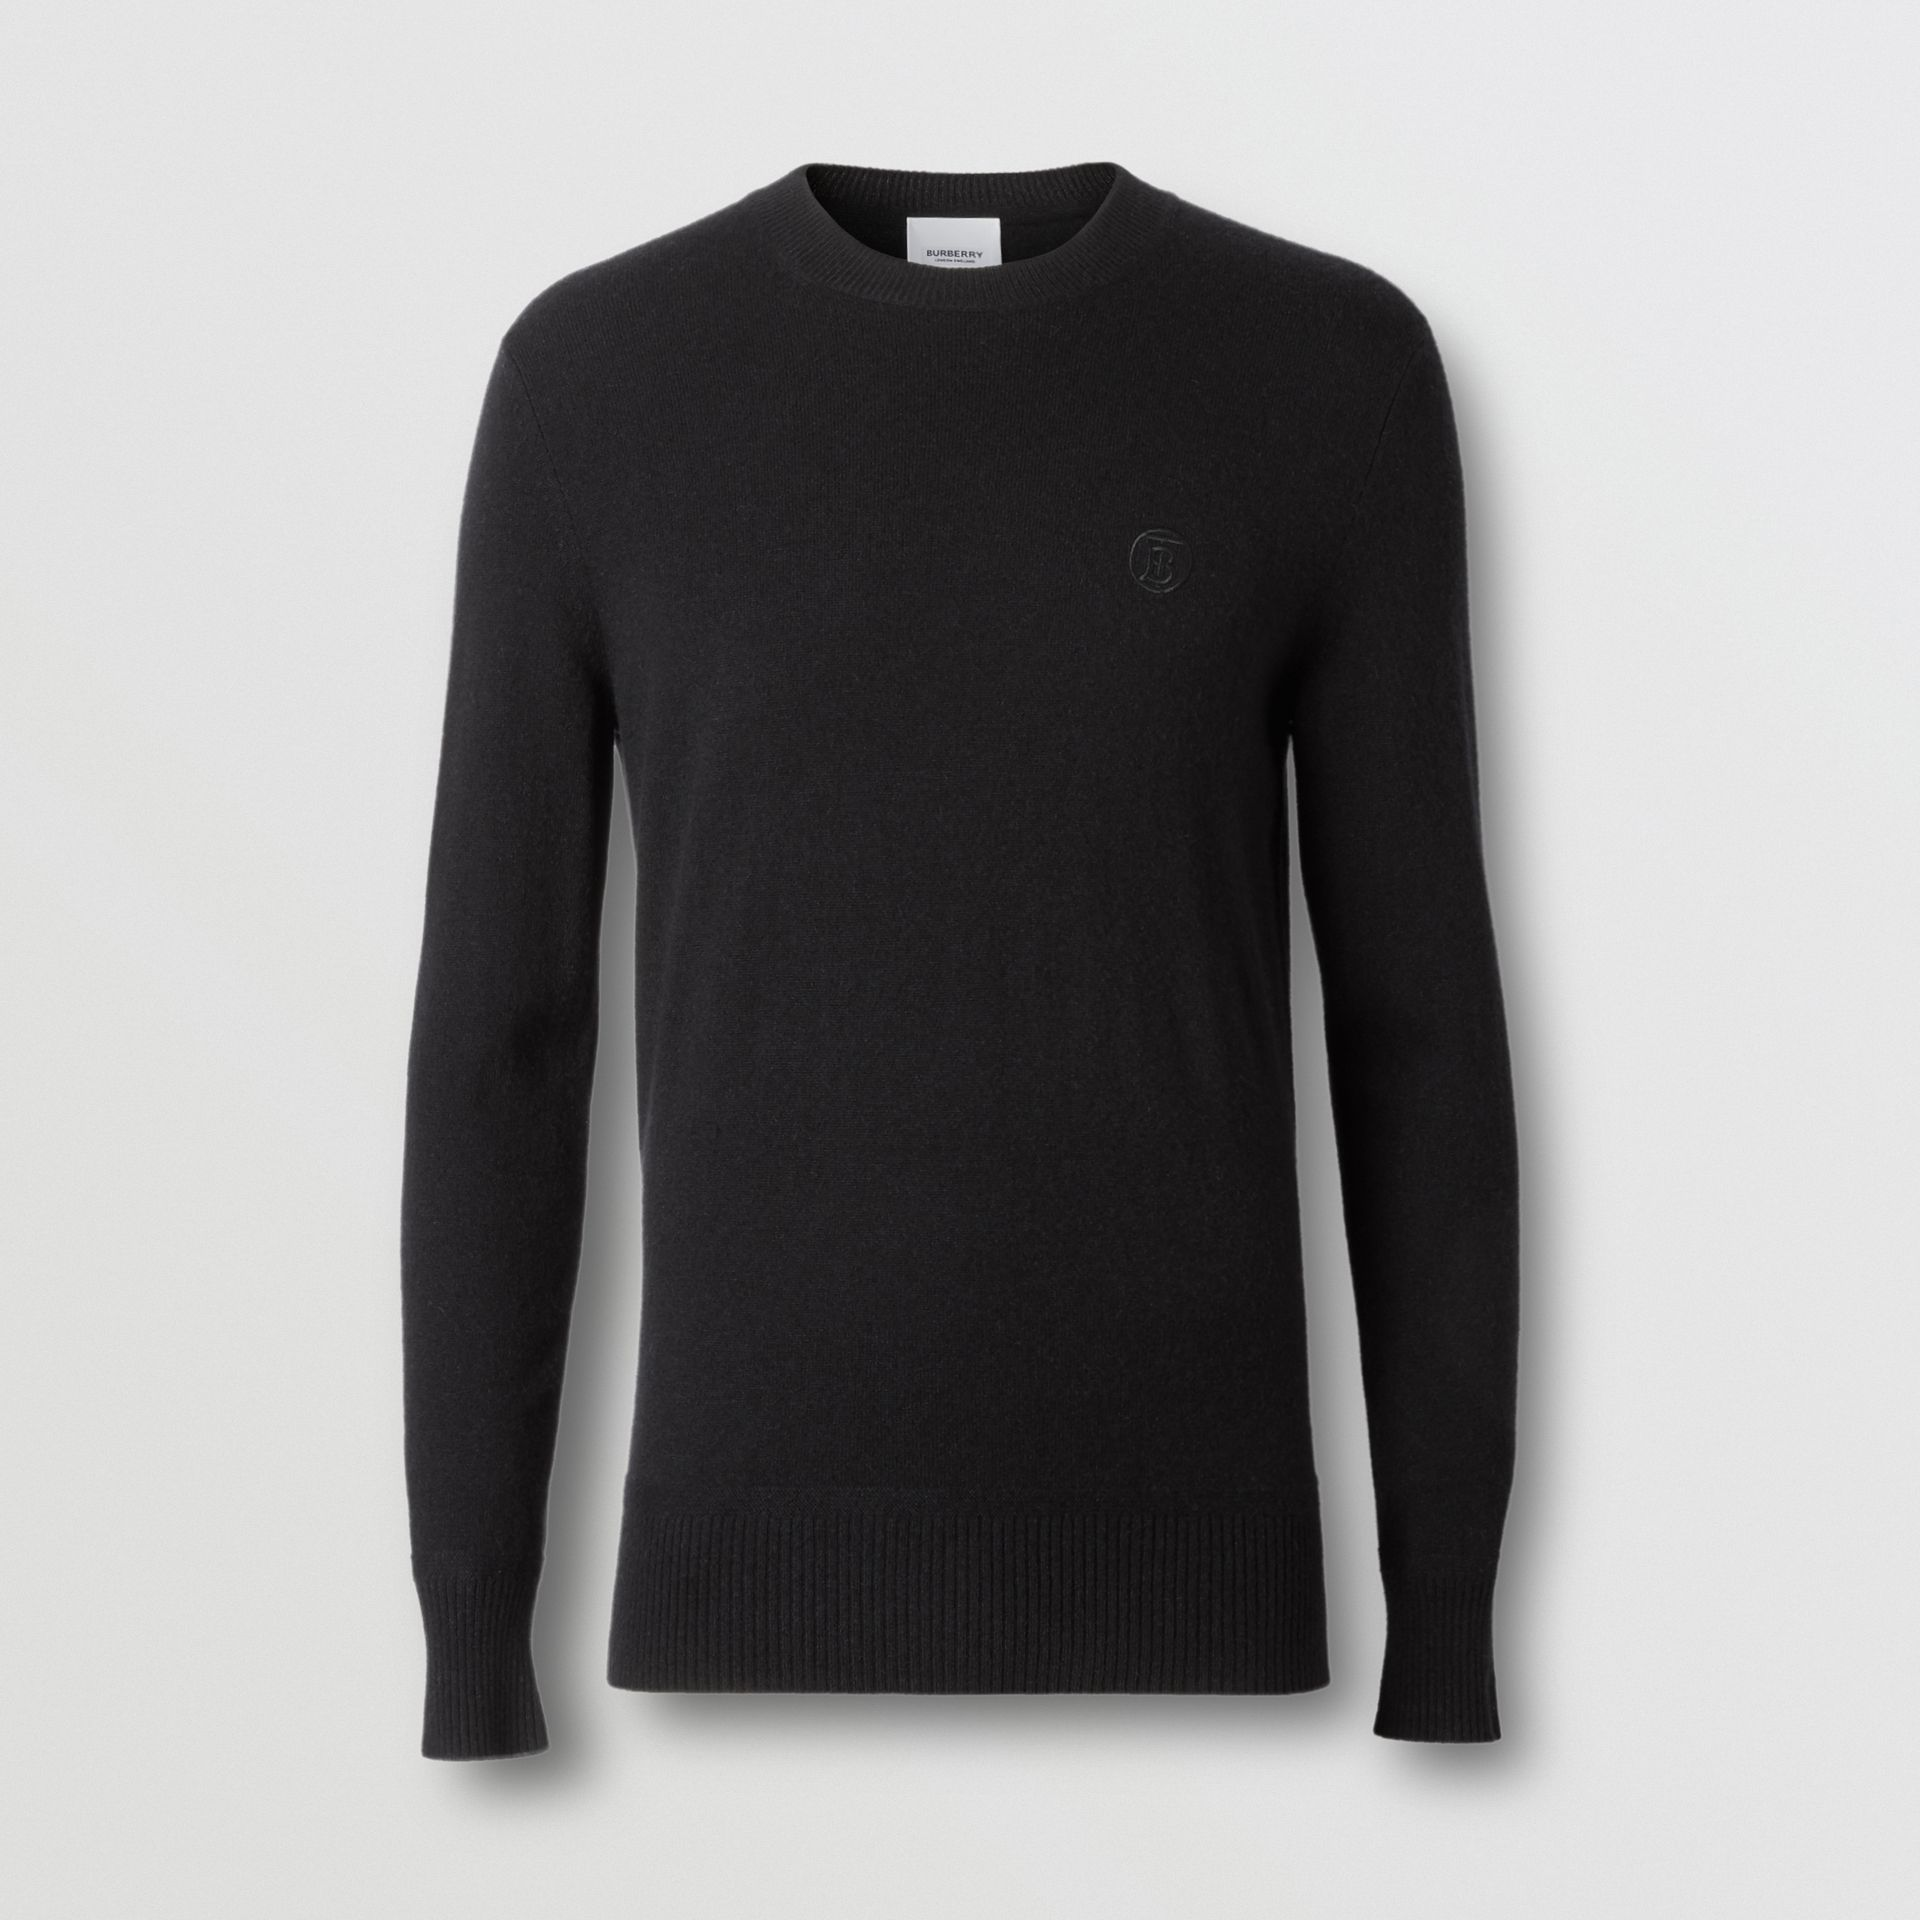 Monogram Motif Cashmere Sweater in Black - Men | Burberry Canada - gallery image 3